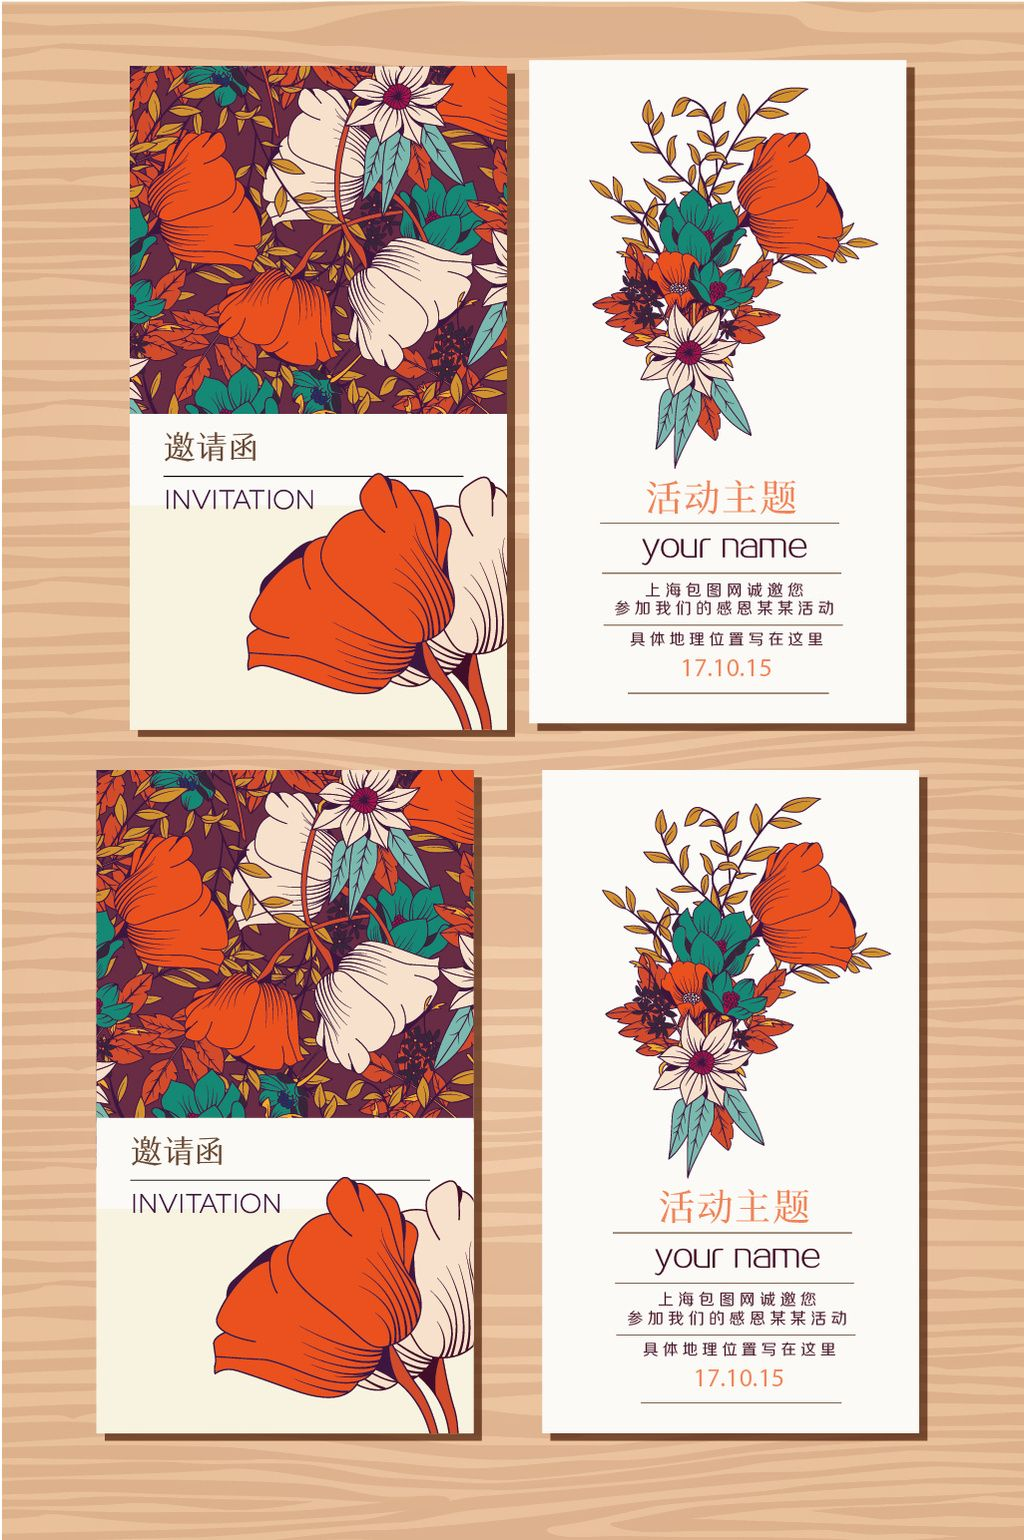 Hand Drawn Floral Card Flowers Background Invitation Invitation Ai Free Download Pikbest How To Draw Hands Flower Art Painting Floral Cards